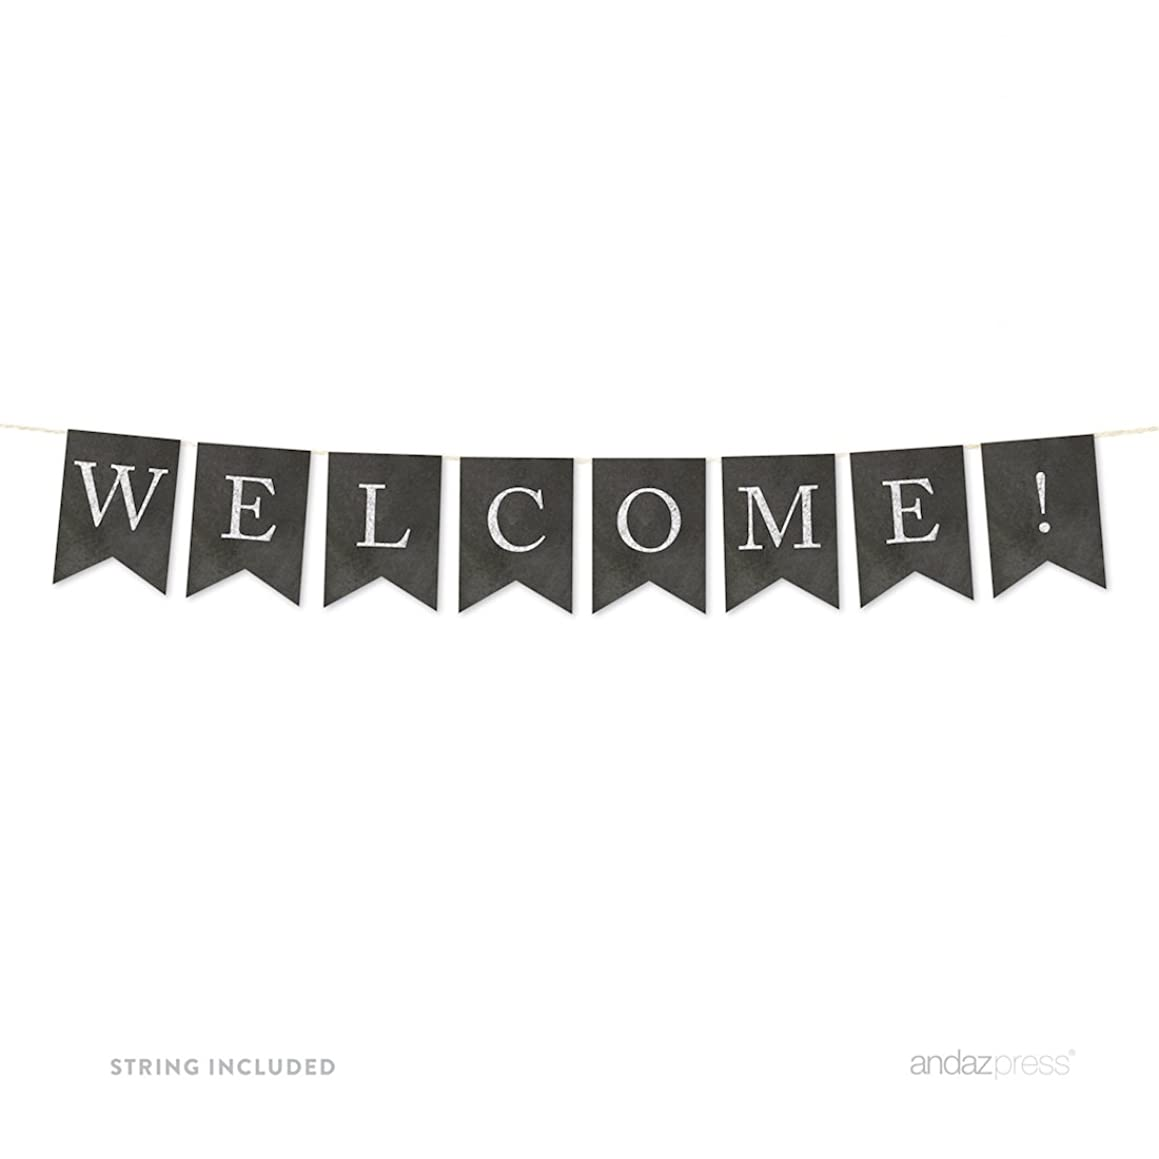 Andaz Press Hanging Bunting Pennant Party Banner with String, Vintage Chalkboard Cardstock, Welcome!, 3-Feet, 1-Set, Includes String